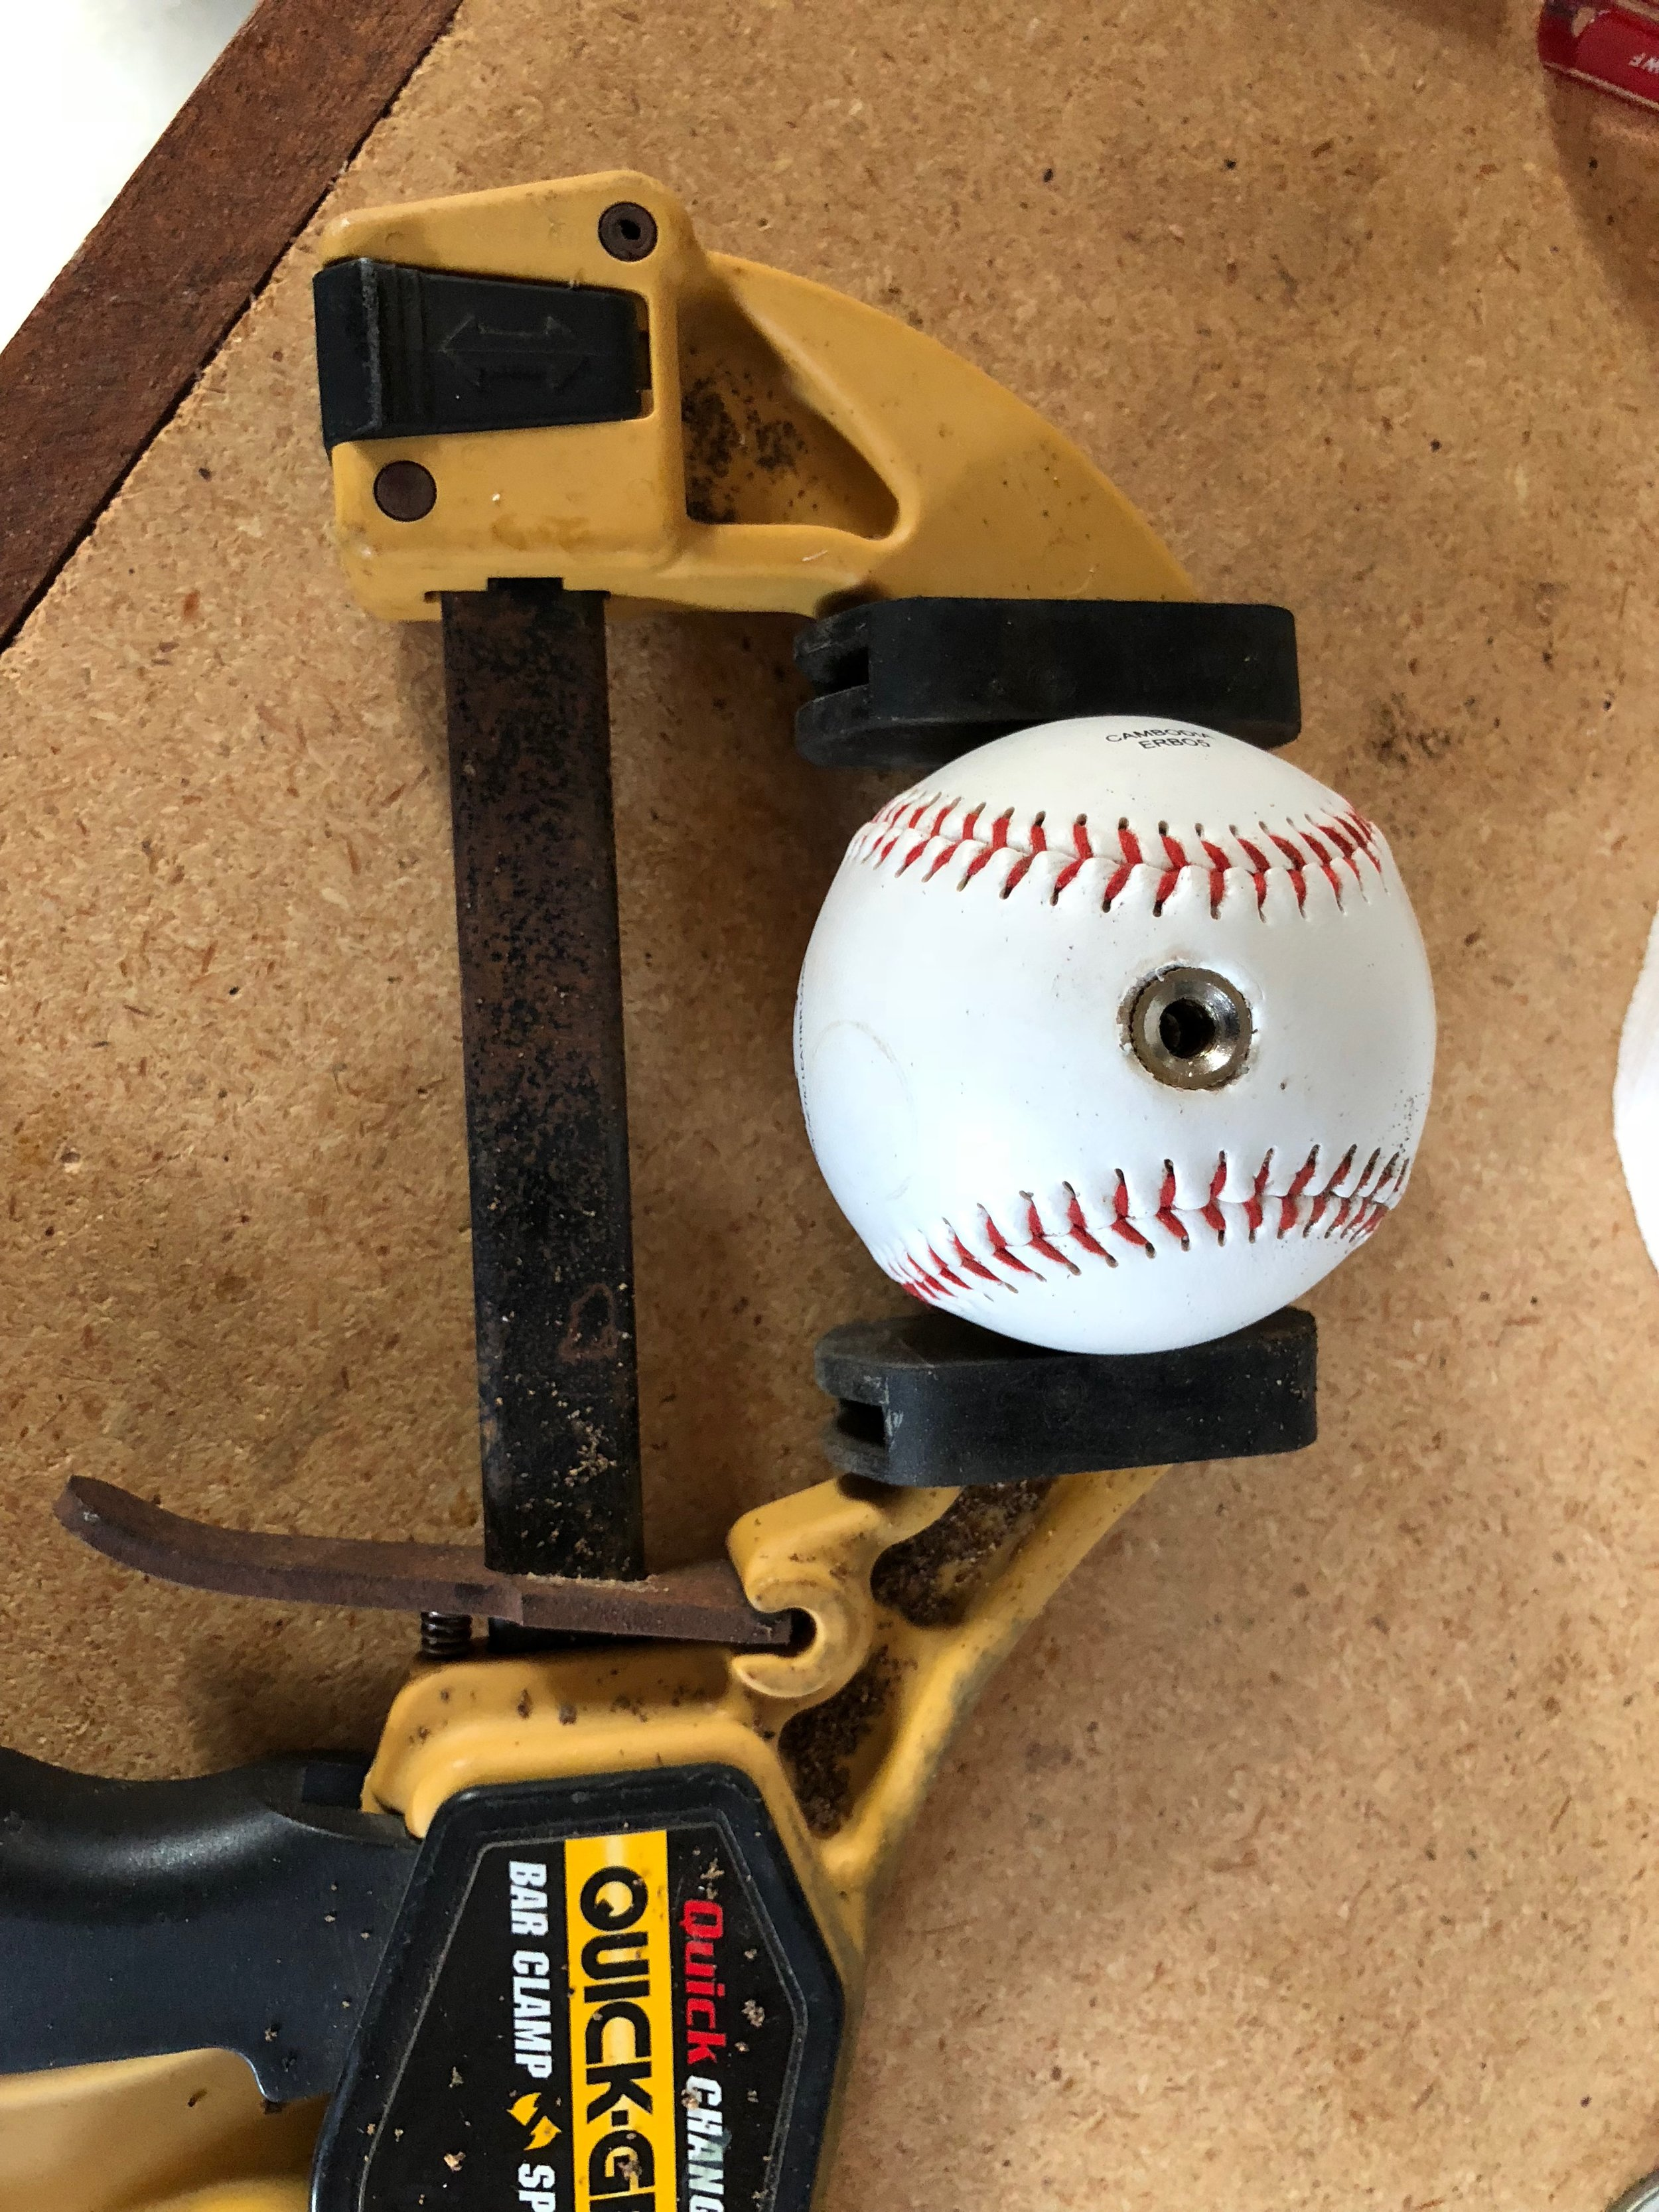 Baseball with finial inserted